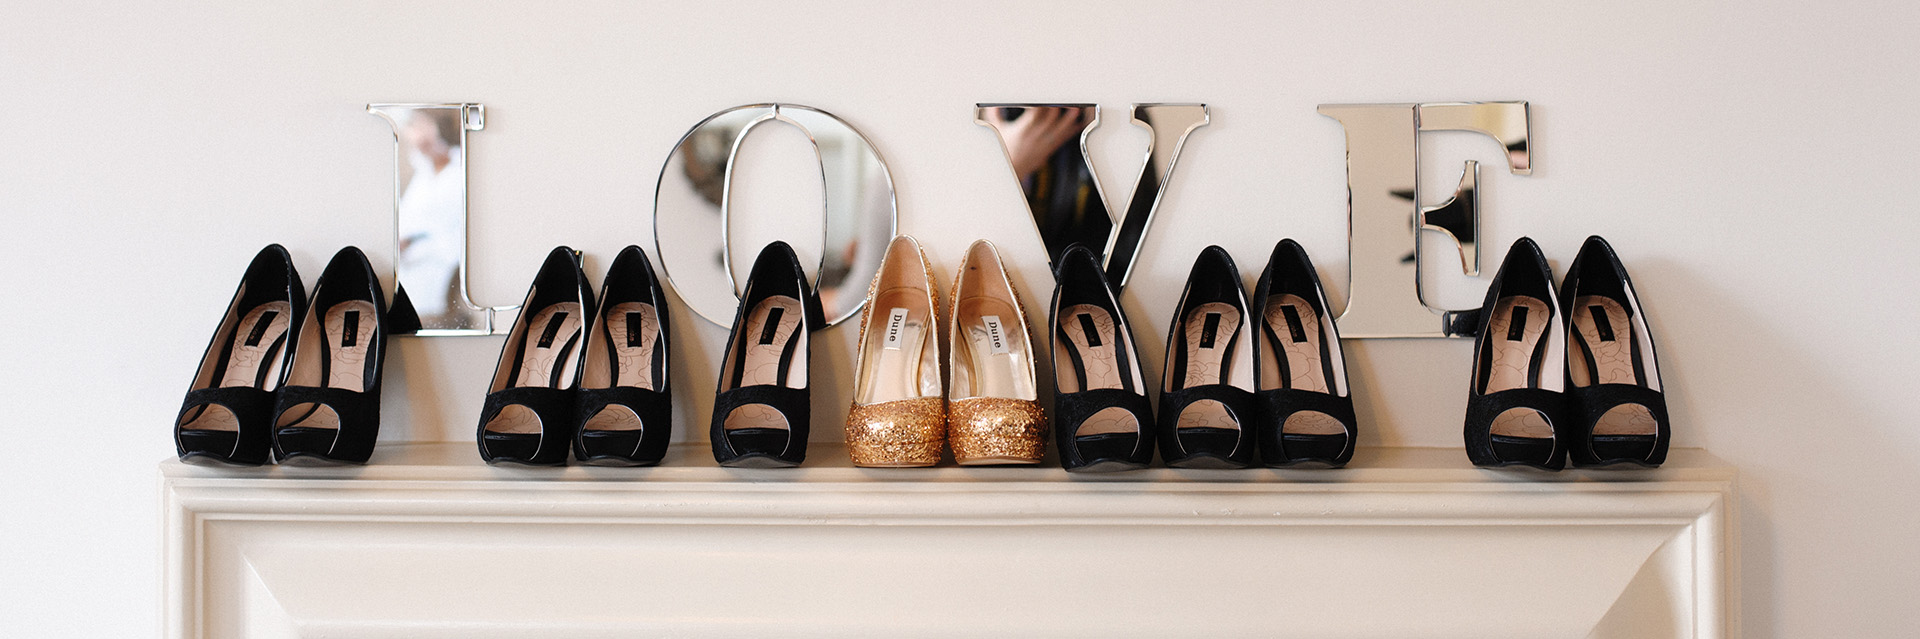 row of women's shoes on a mantlepiece